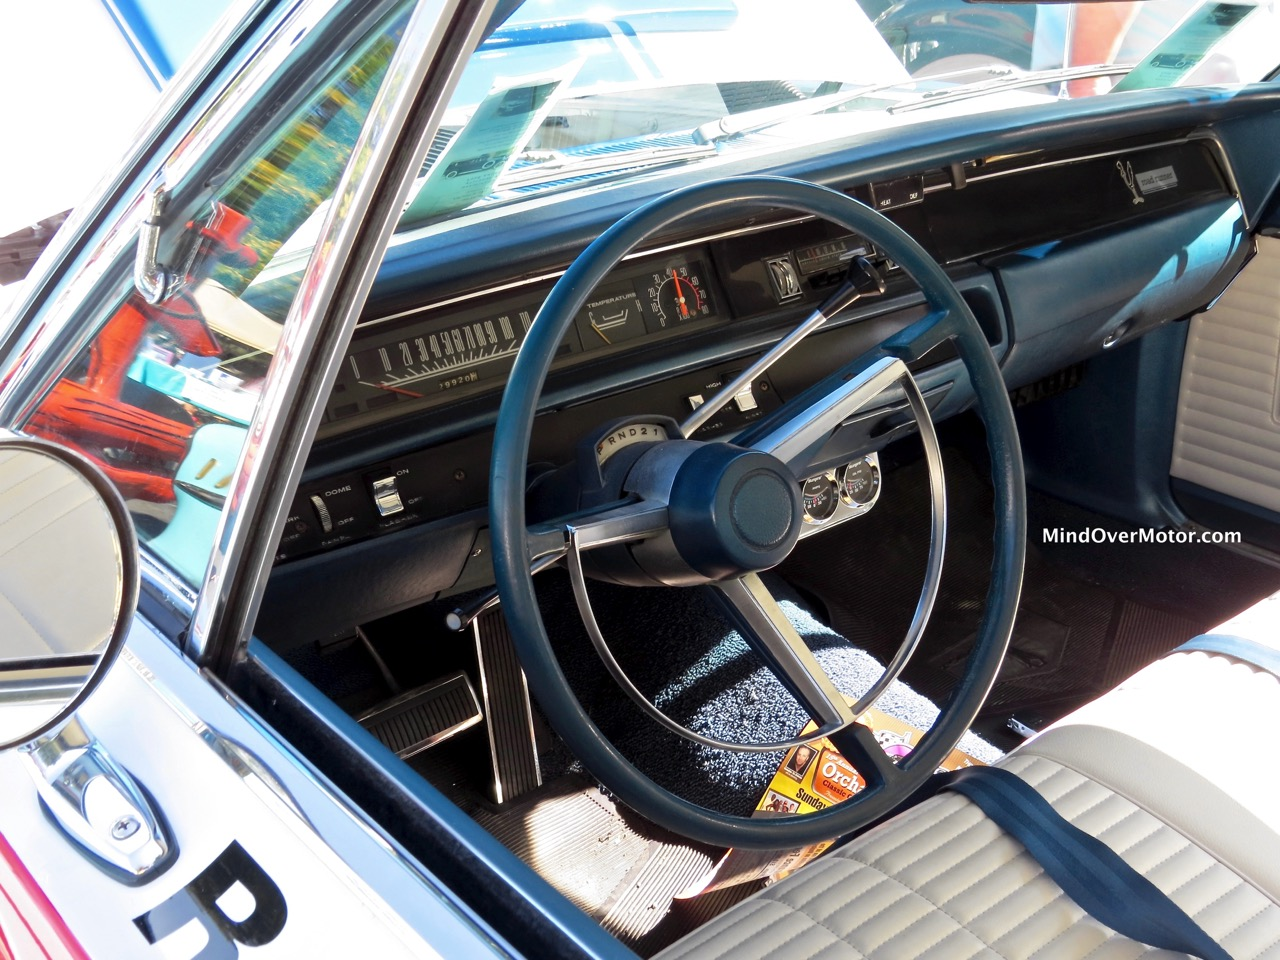 Sox and Martin Clone Road Runner Interior